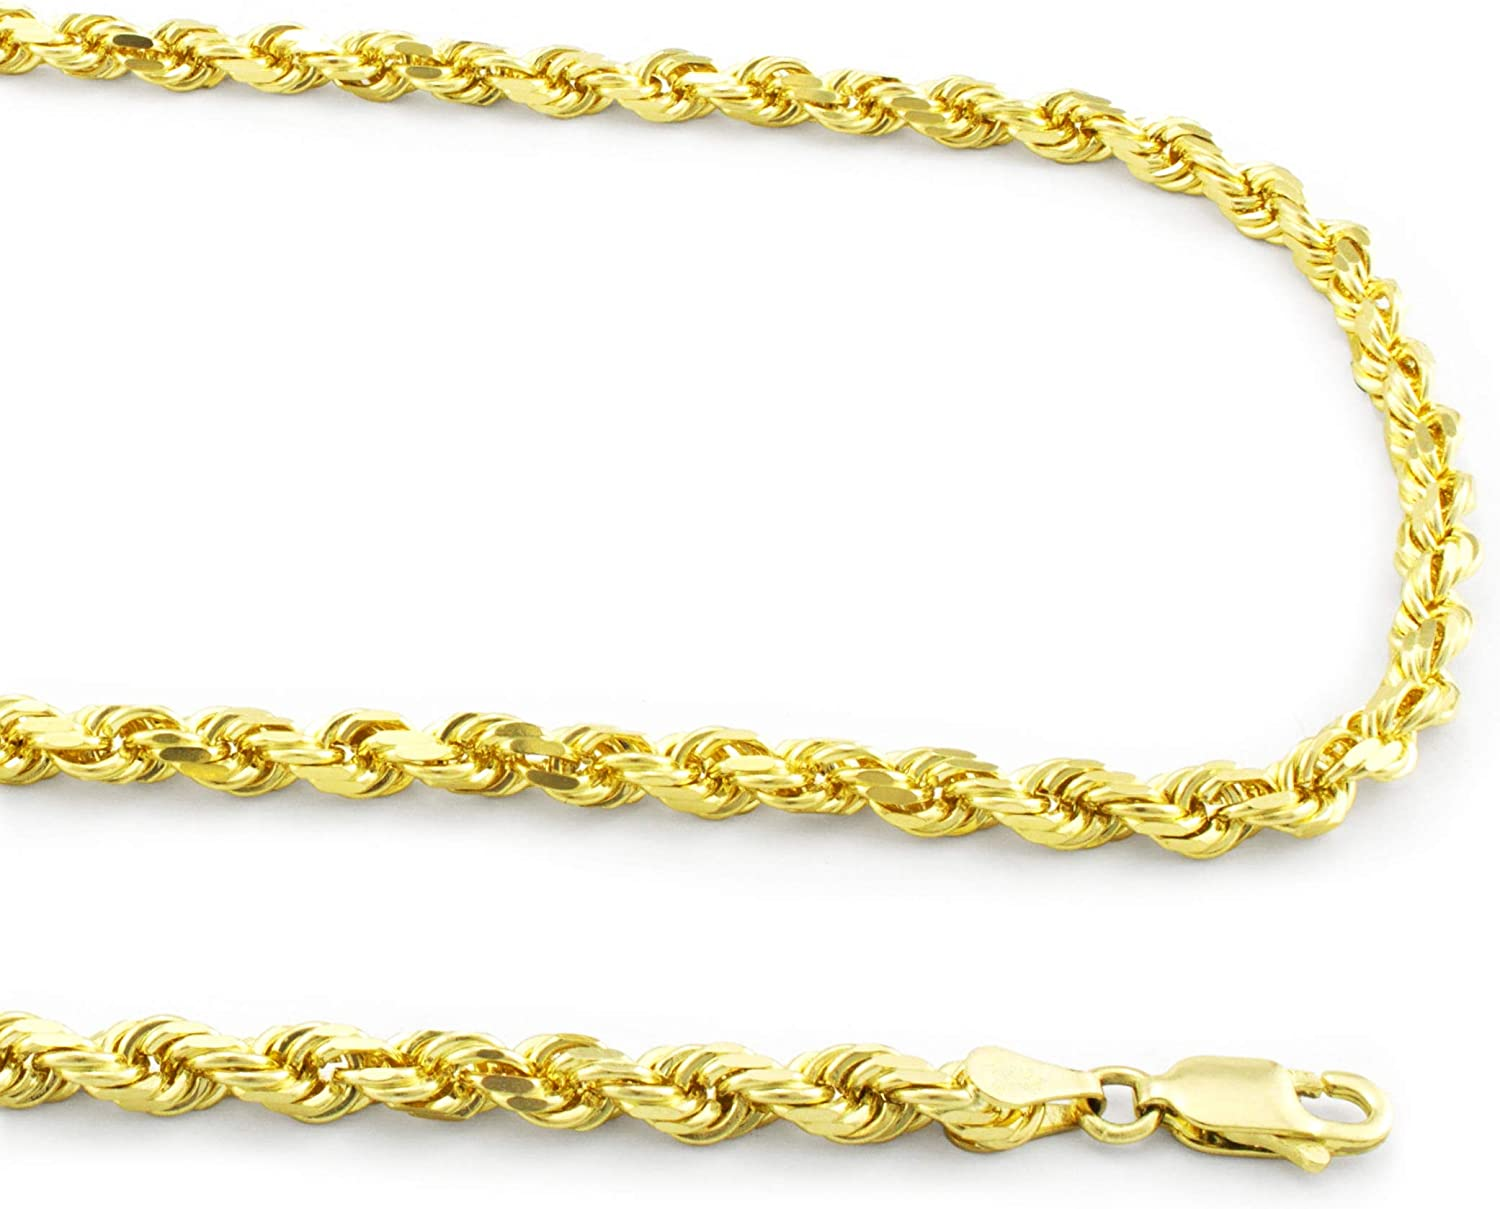 Nuragold 14k Yellow Gold 4mm Rope Chain Diamond Cut Pendant Necklace, Mens Womens Lobster Lock 20